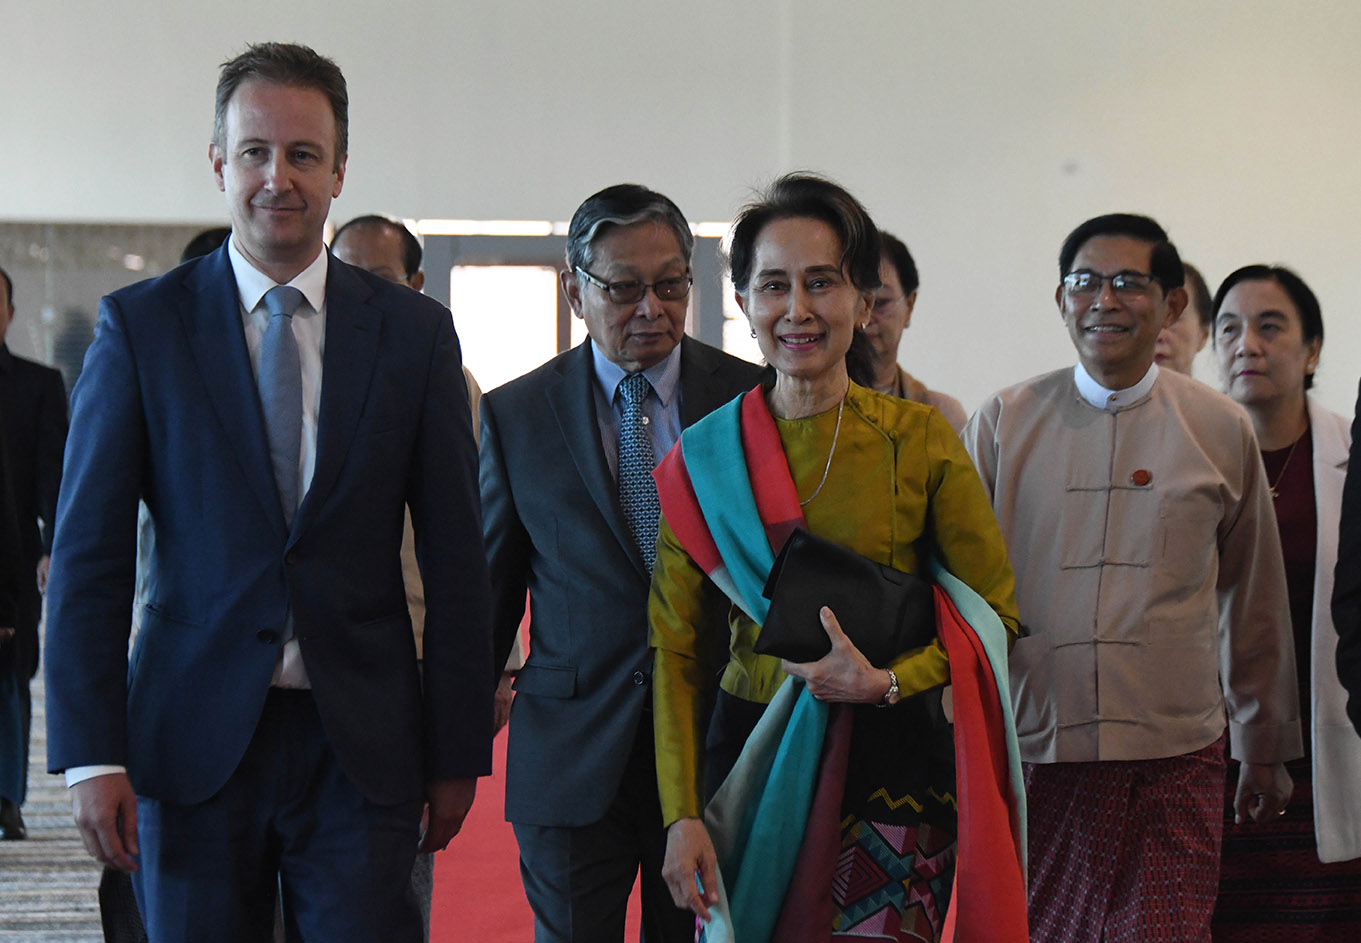 State Counsellor Daw Aung San Suu Kyi being seen off by Union Minister U Min Thu, officials and Ambassador of the Embassy of the Kingdom of the Netherlands in Myanmar Mr Wouter Jurgens at the Nay Pyi Taw International Airport yesterday. Photo: MNA